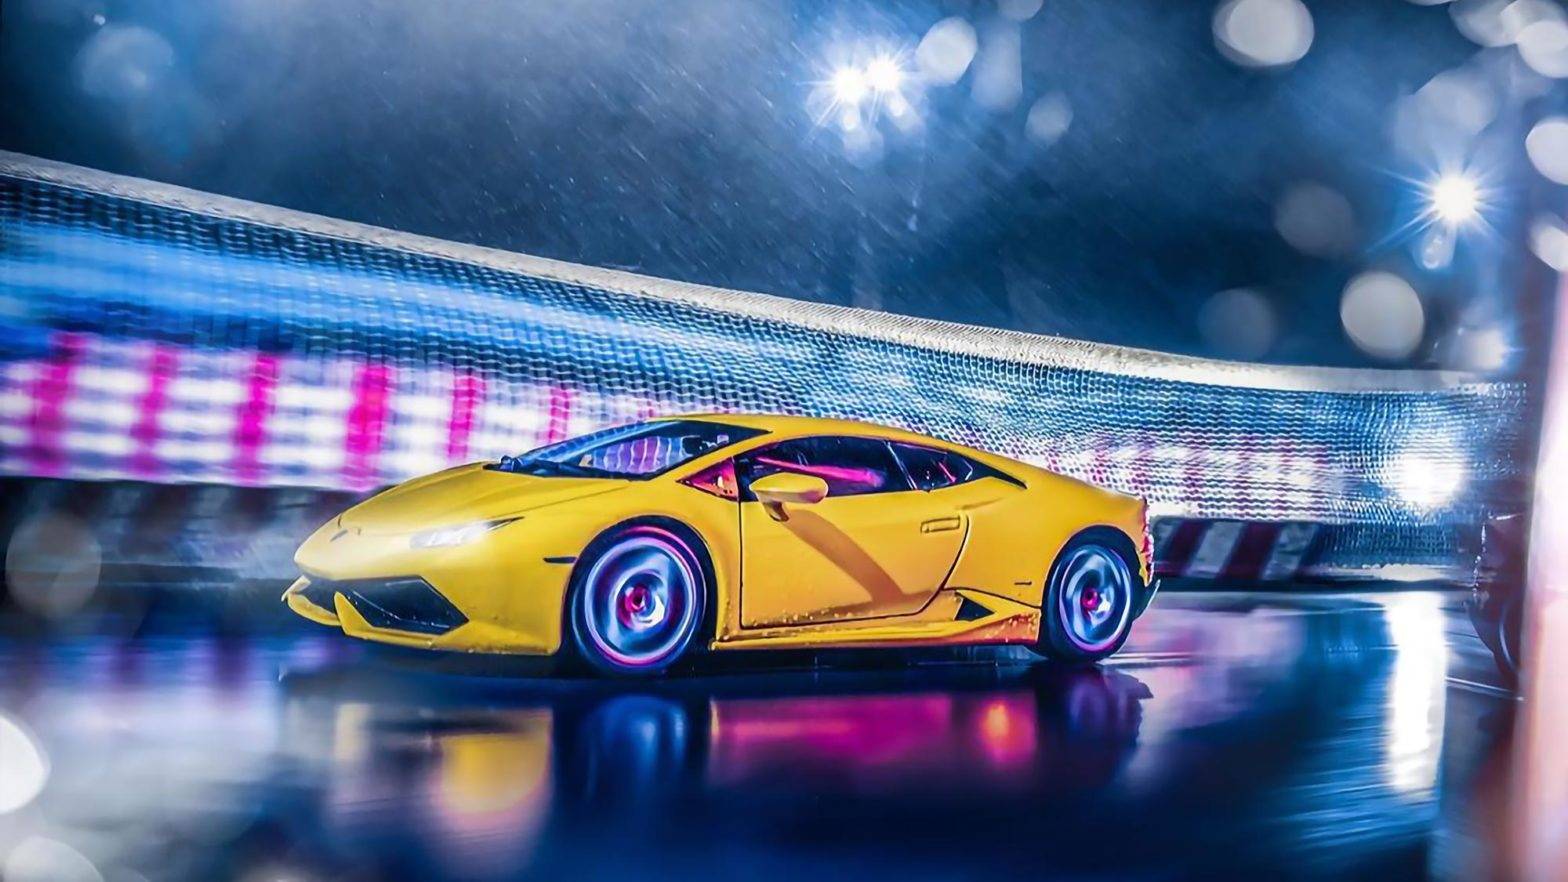 Realistic Photos of Fake Speeding Lamborghini